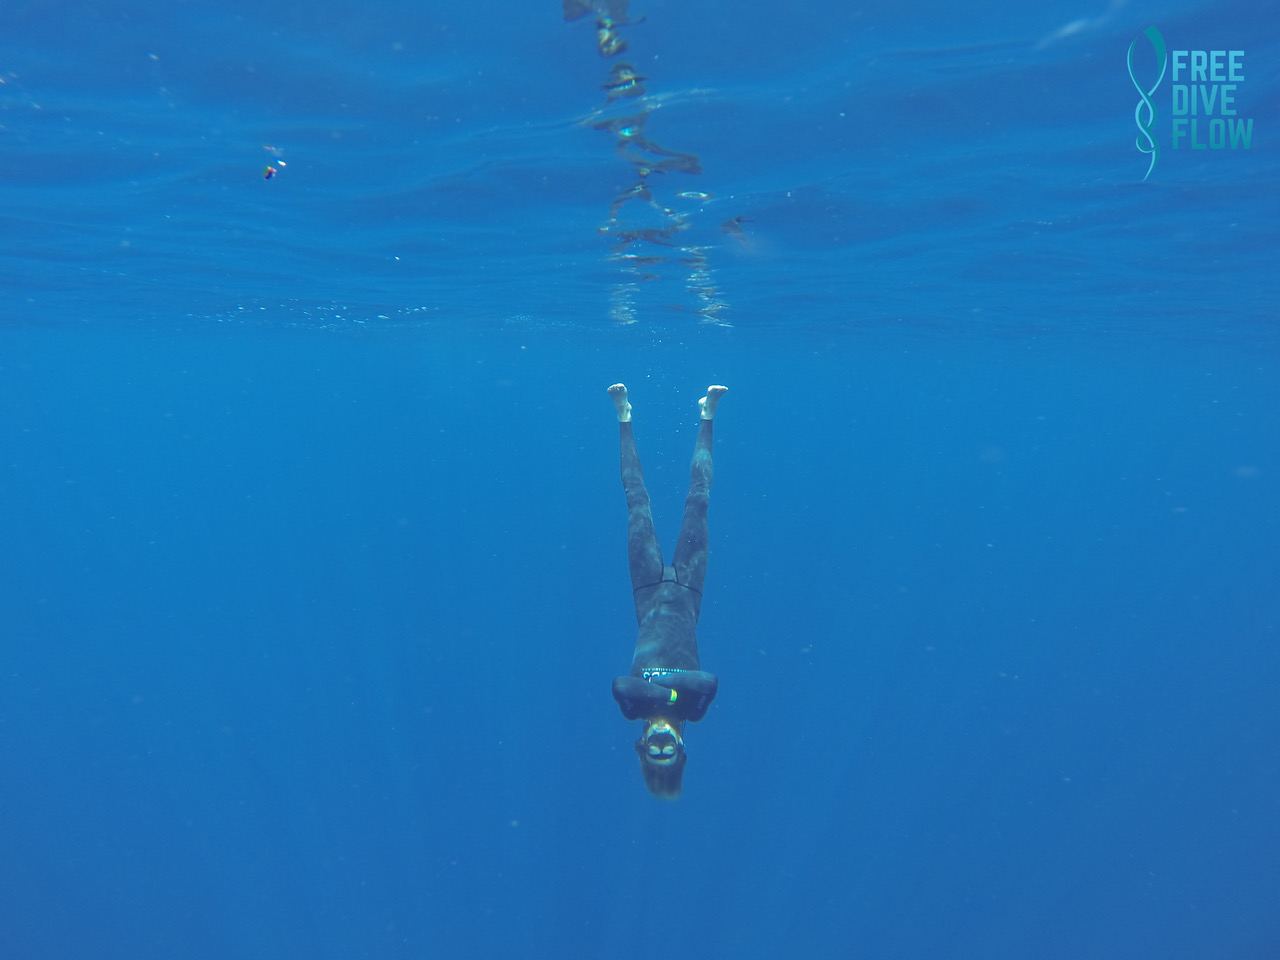 MJ Kuhn Freedive Chill